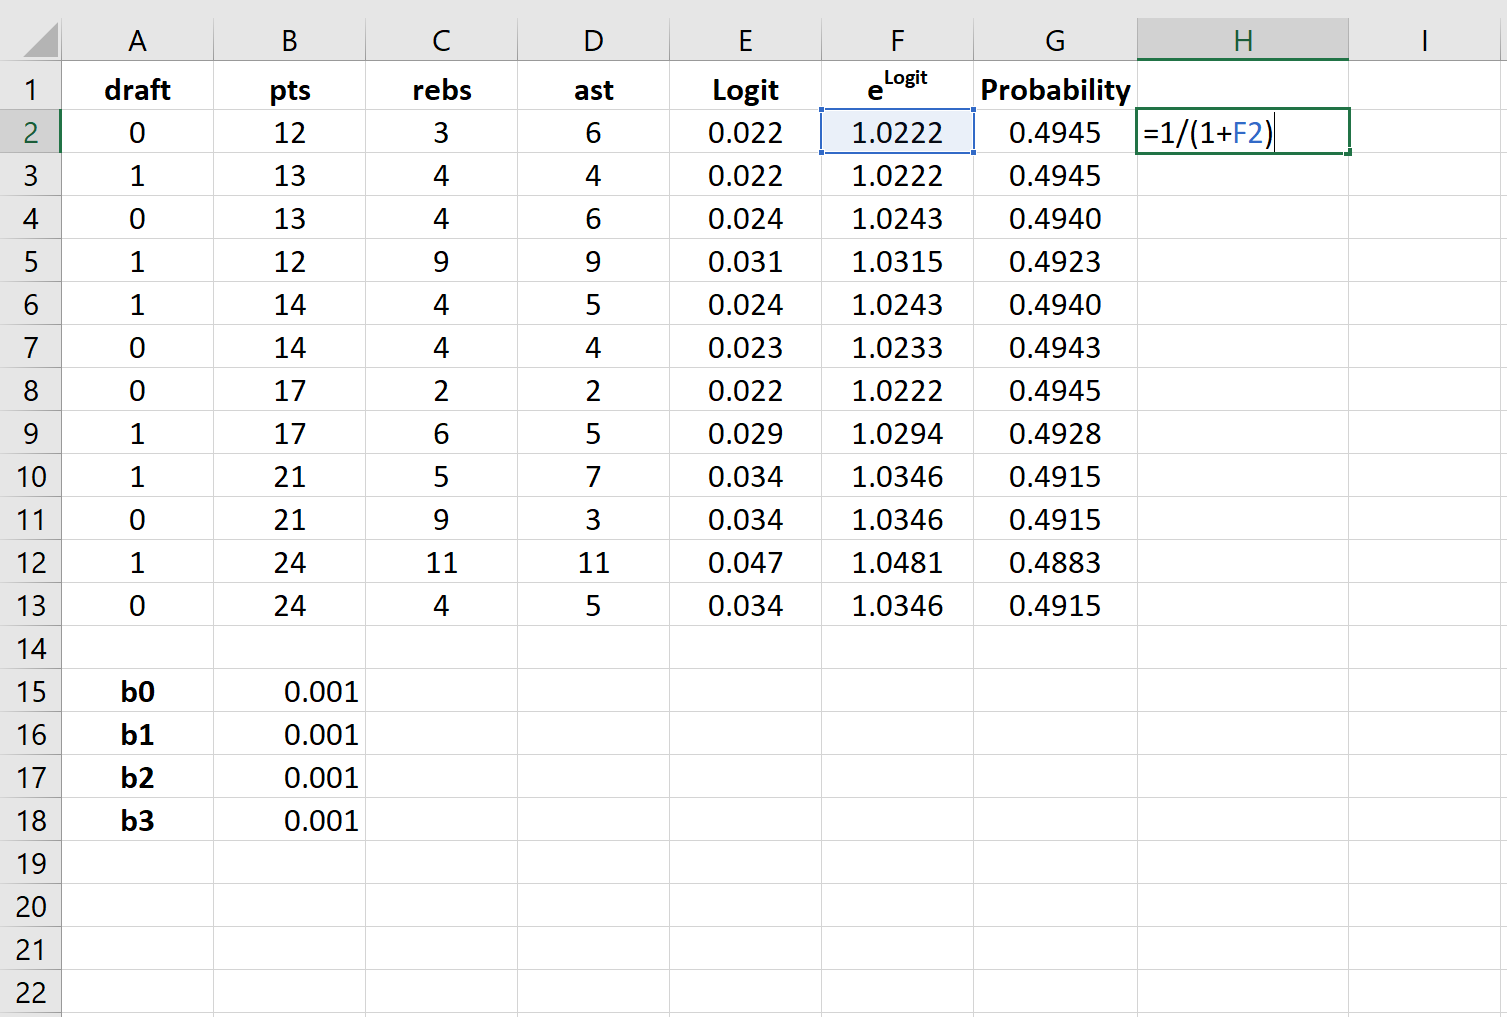 Probability in Excel for Logistic regression